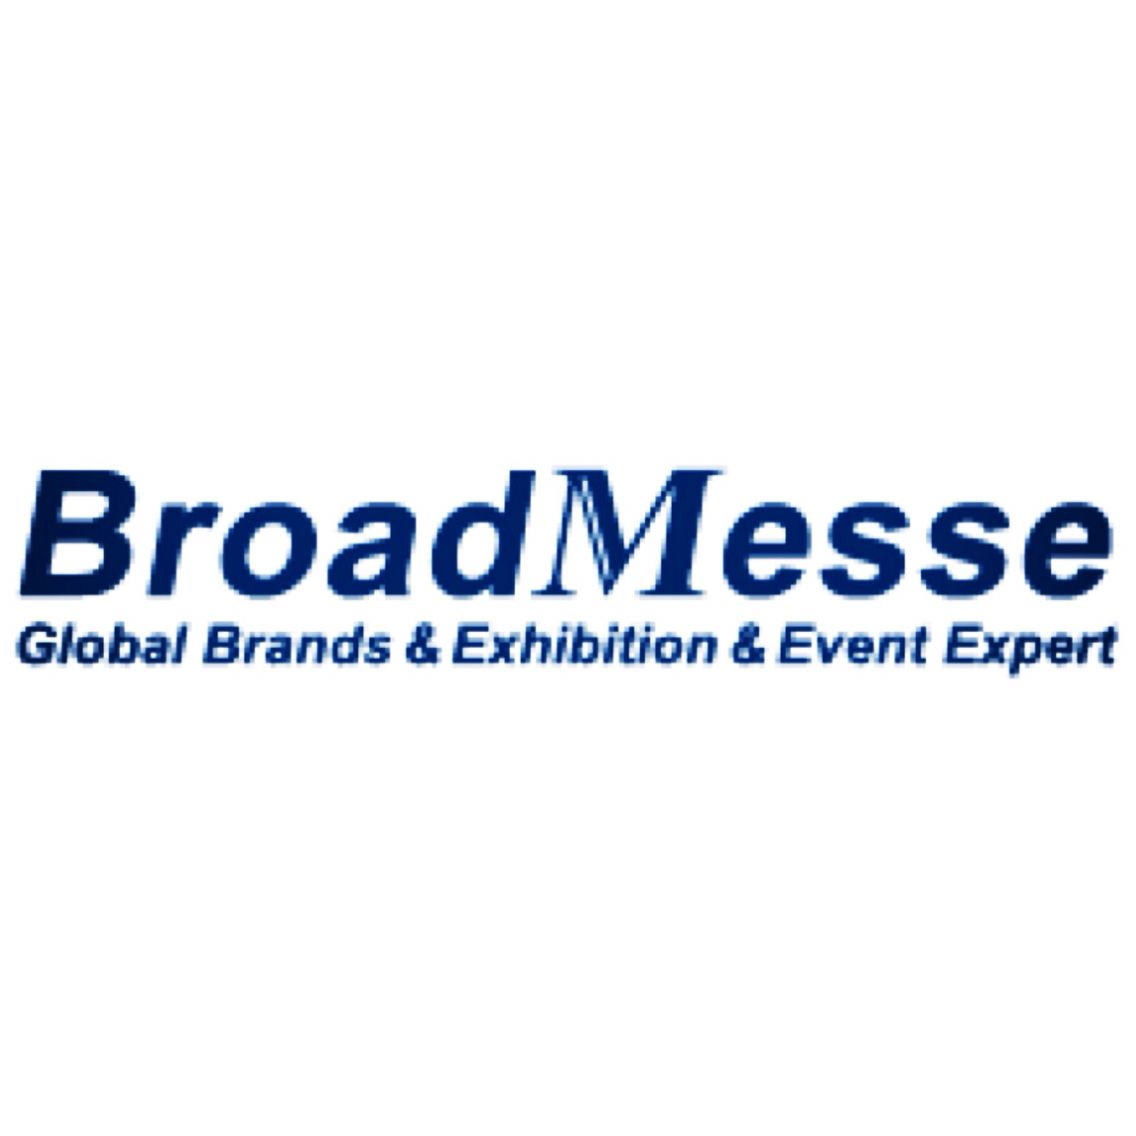 Broadmesse International Shanghai Are Looking For Graphic